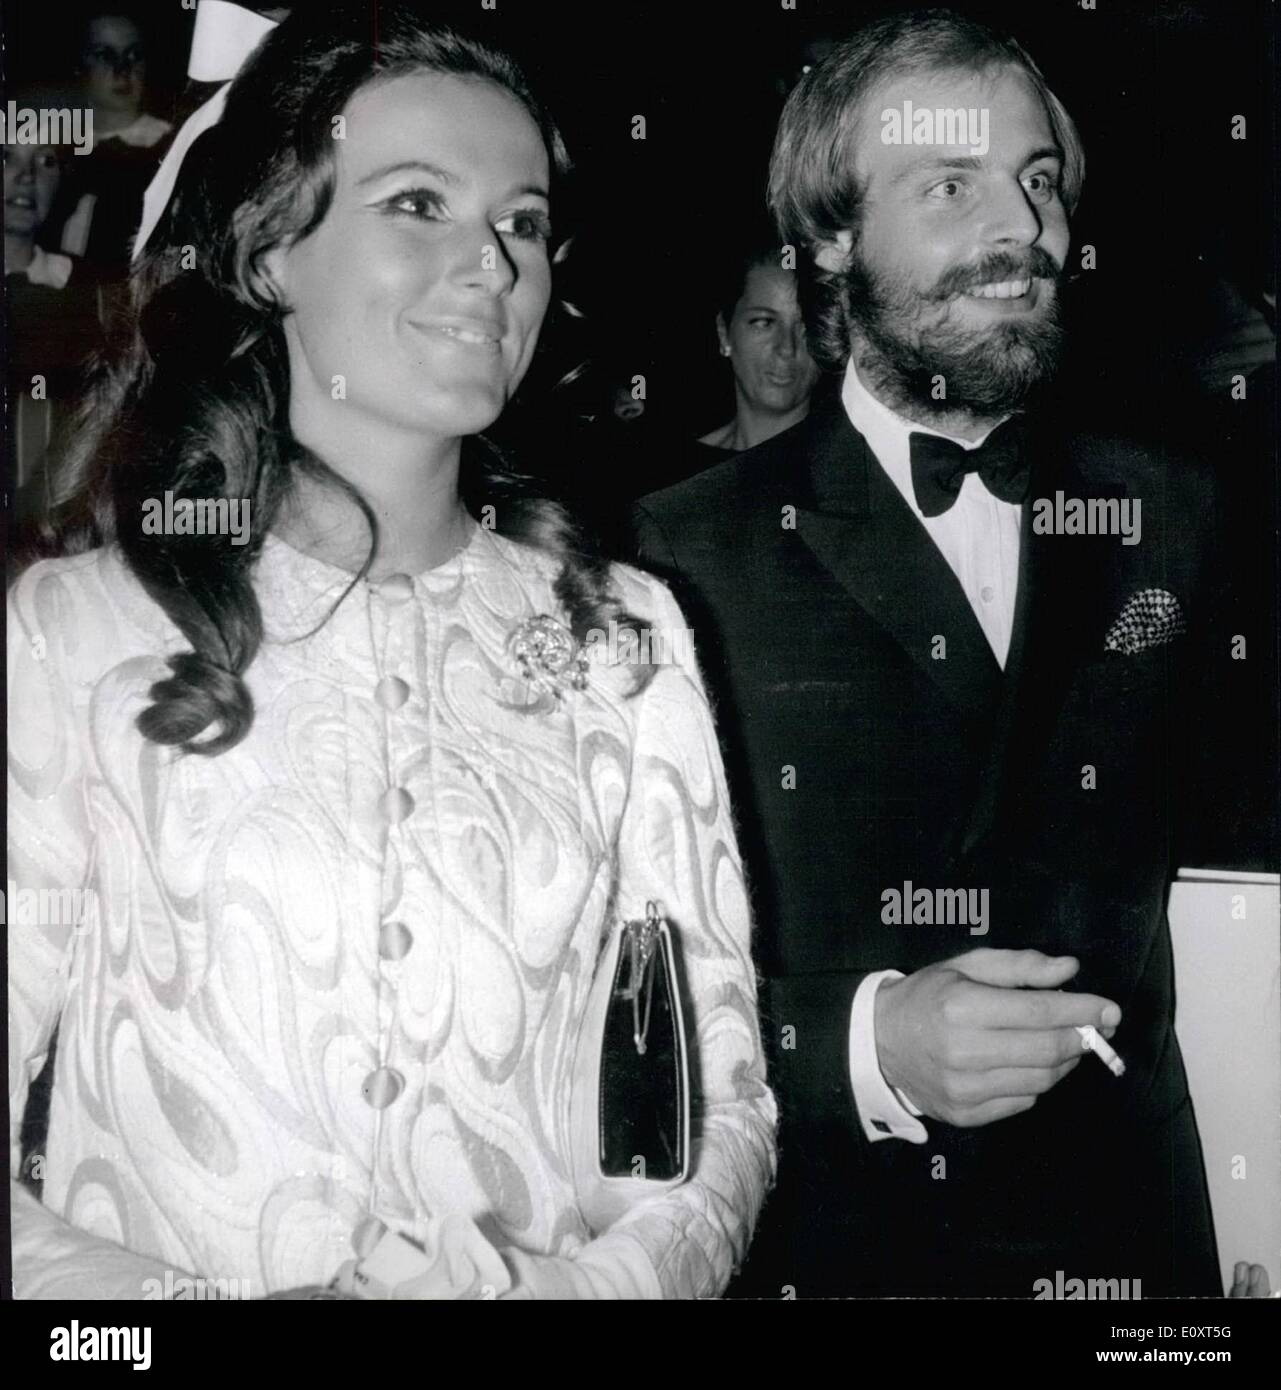 Sep. 09, 1967 - ''Taming Of The Shrew'': Gala Performance At Paris Opera: Franco Ziferelli's film ''Taming of the Shrew'' starring Liz Taylor and Richard Burton was giev at a Gala show held at the Paris Opera last night .Photo Shows Mike Marshall (Michel Morgan's Actor son) pictured with his wife as they arrived at the Opera House. - Stock Image